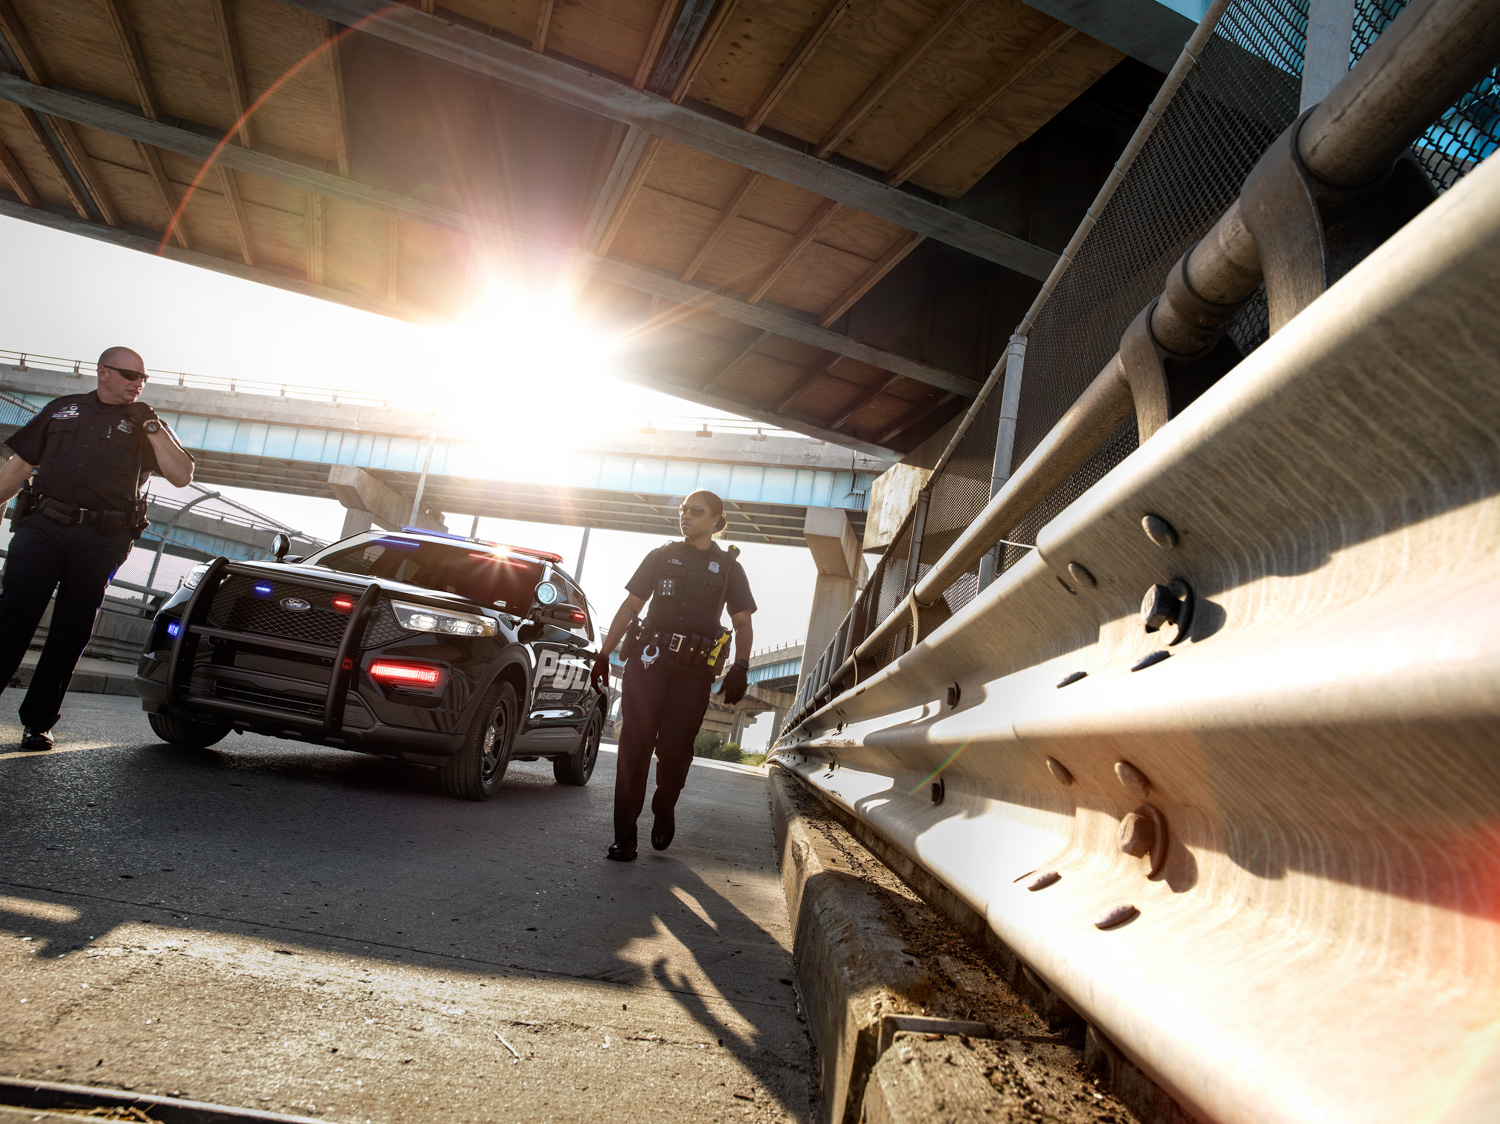 2020 Ford Police Interceptor Utility Hybrid overpass highway